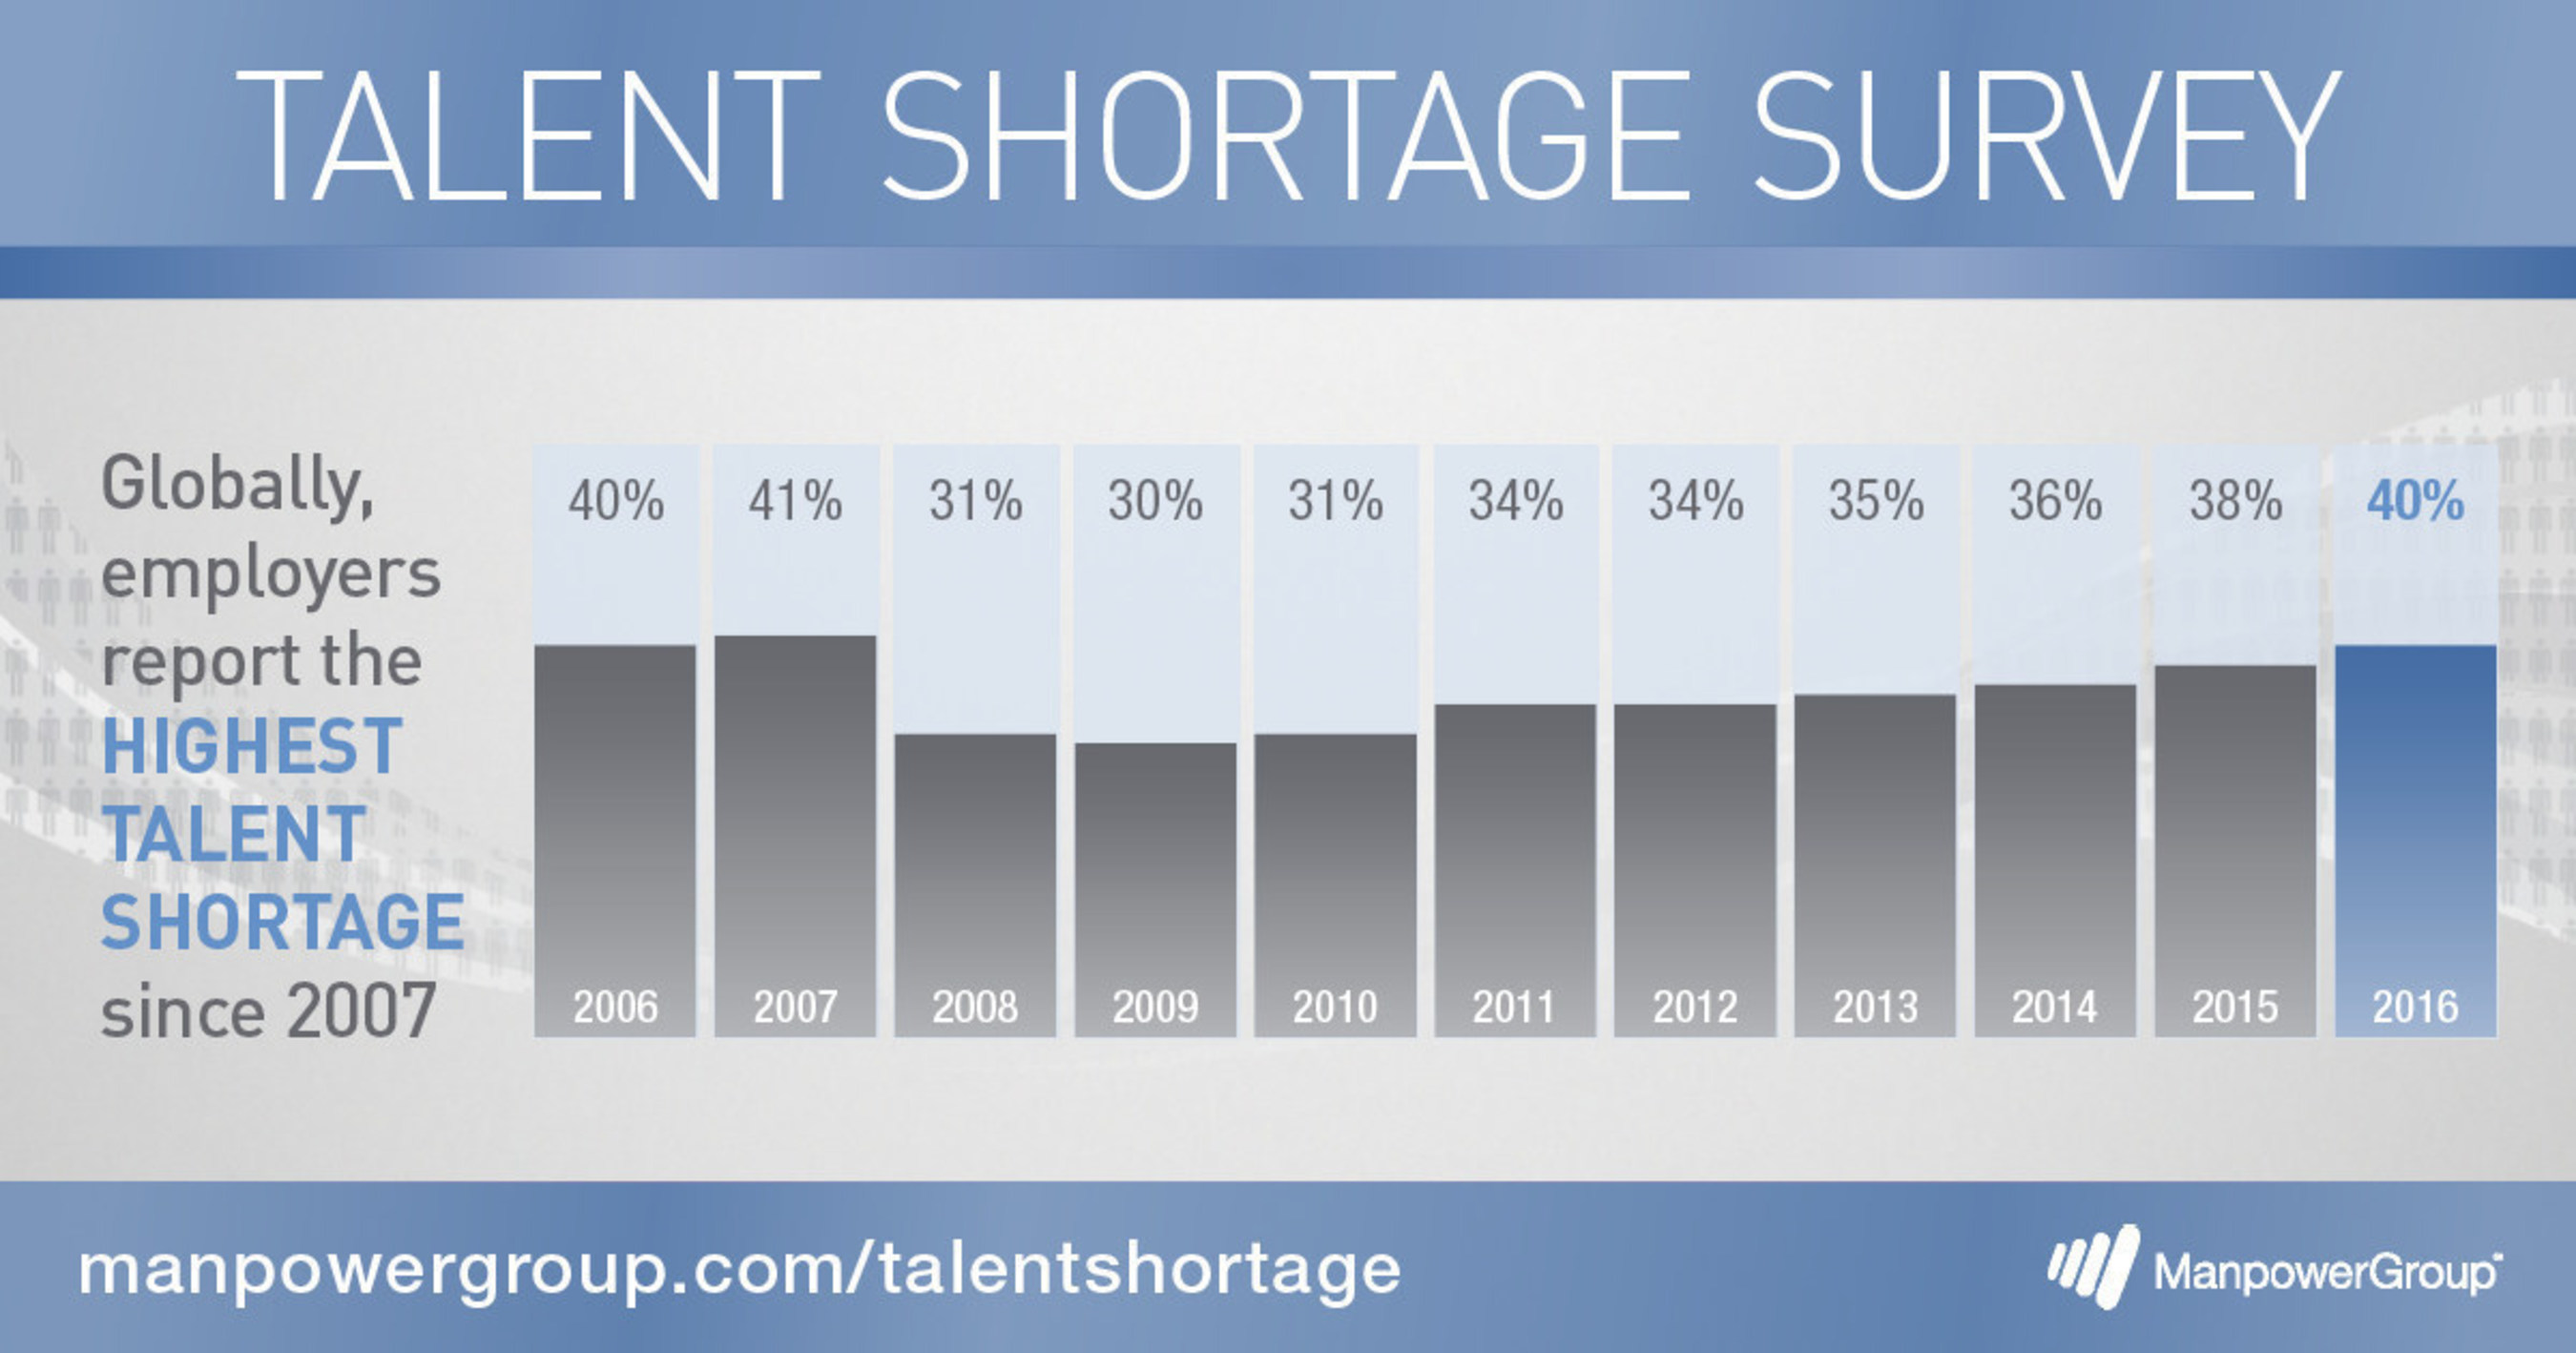 Globally, employers report the highest talent shortage since 2007.